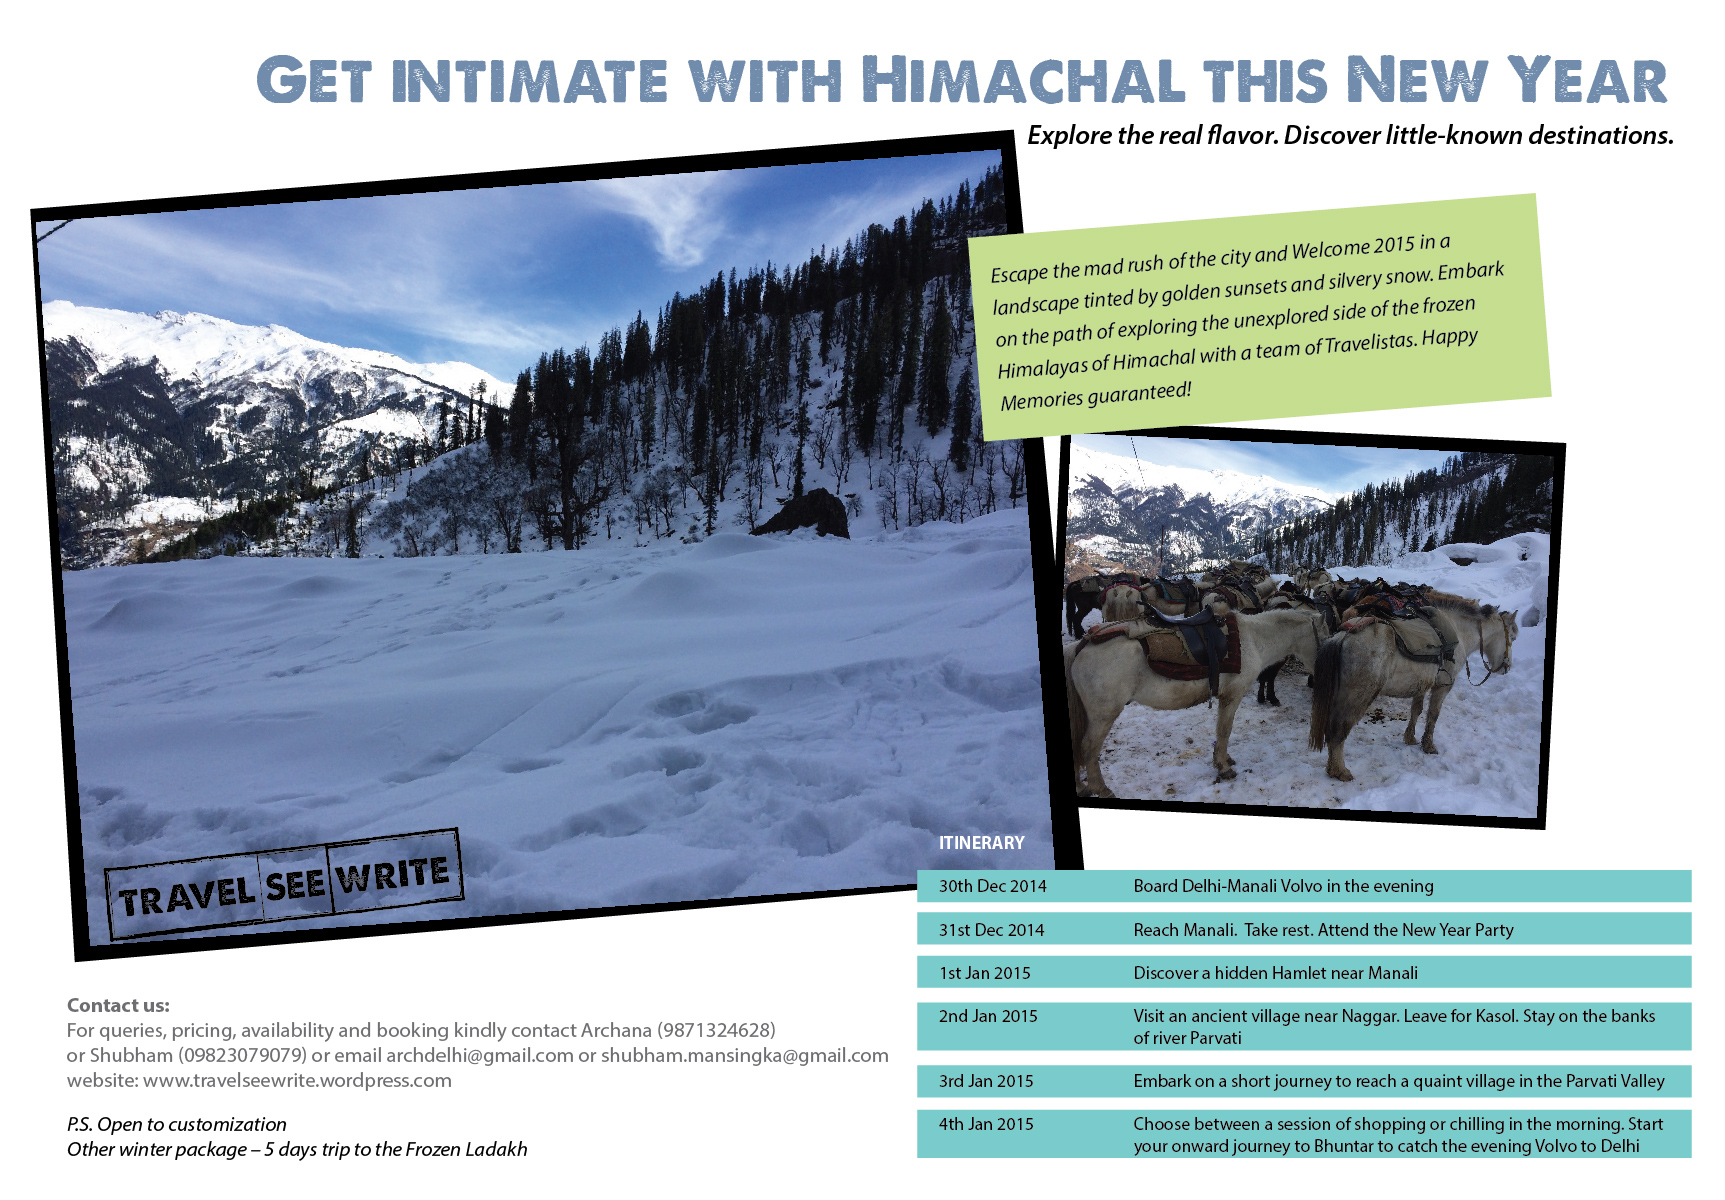 Welcome This New Year in Unexplored Himachal